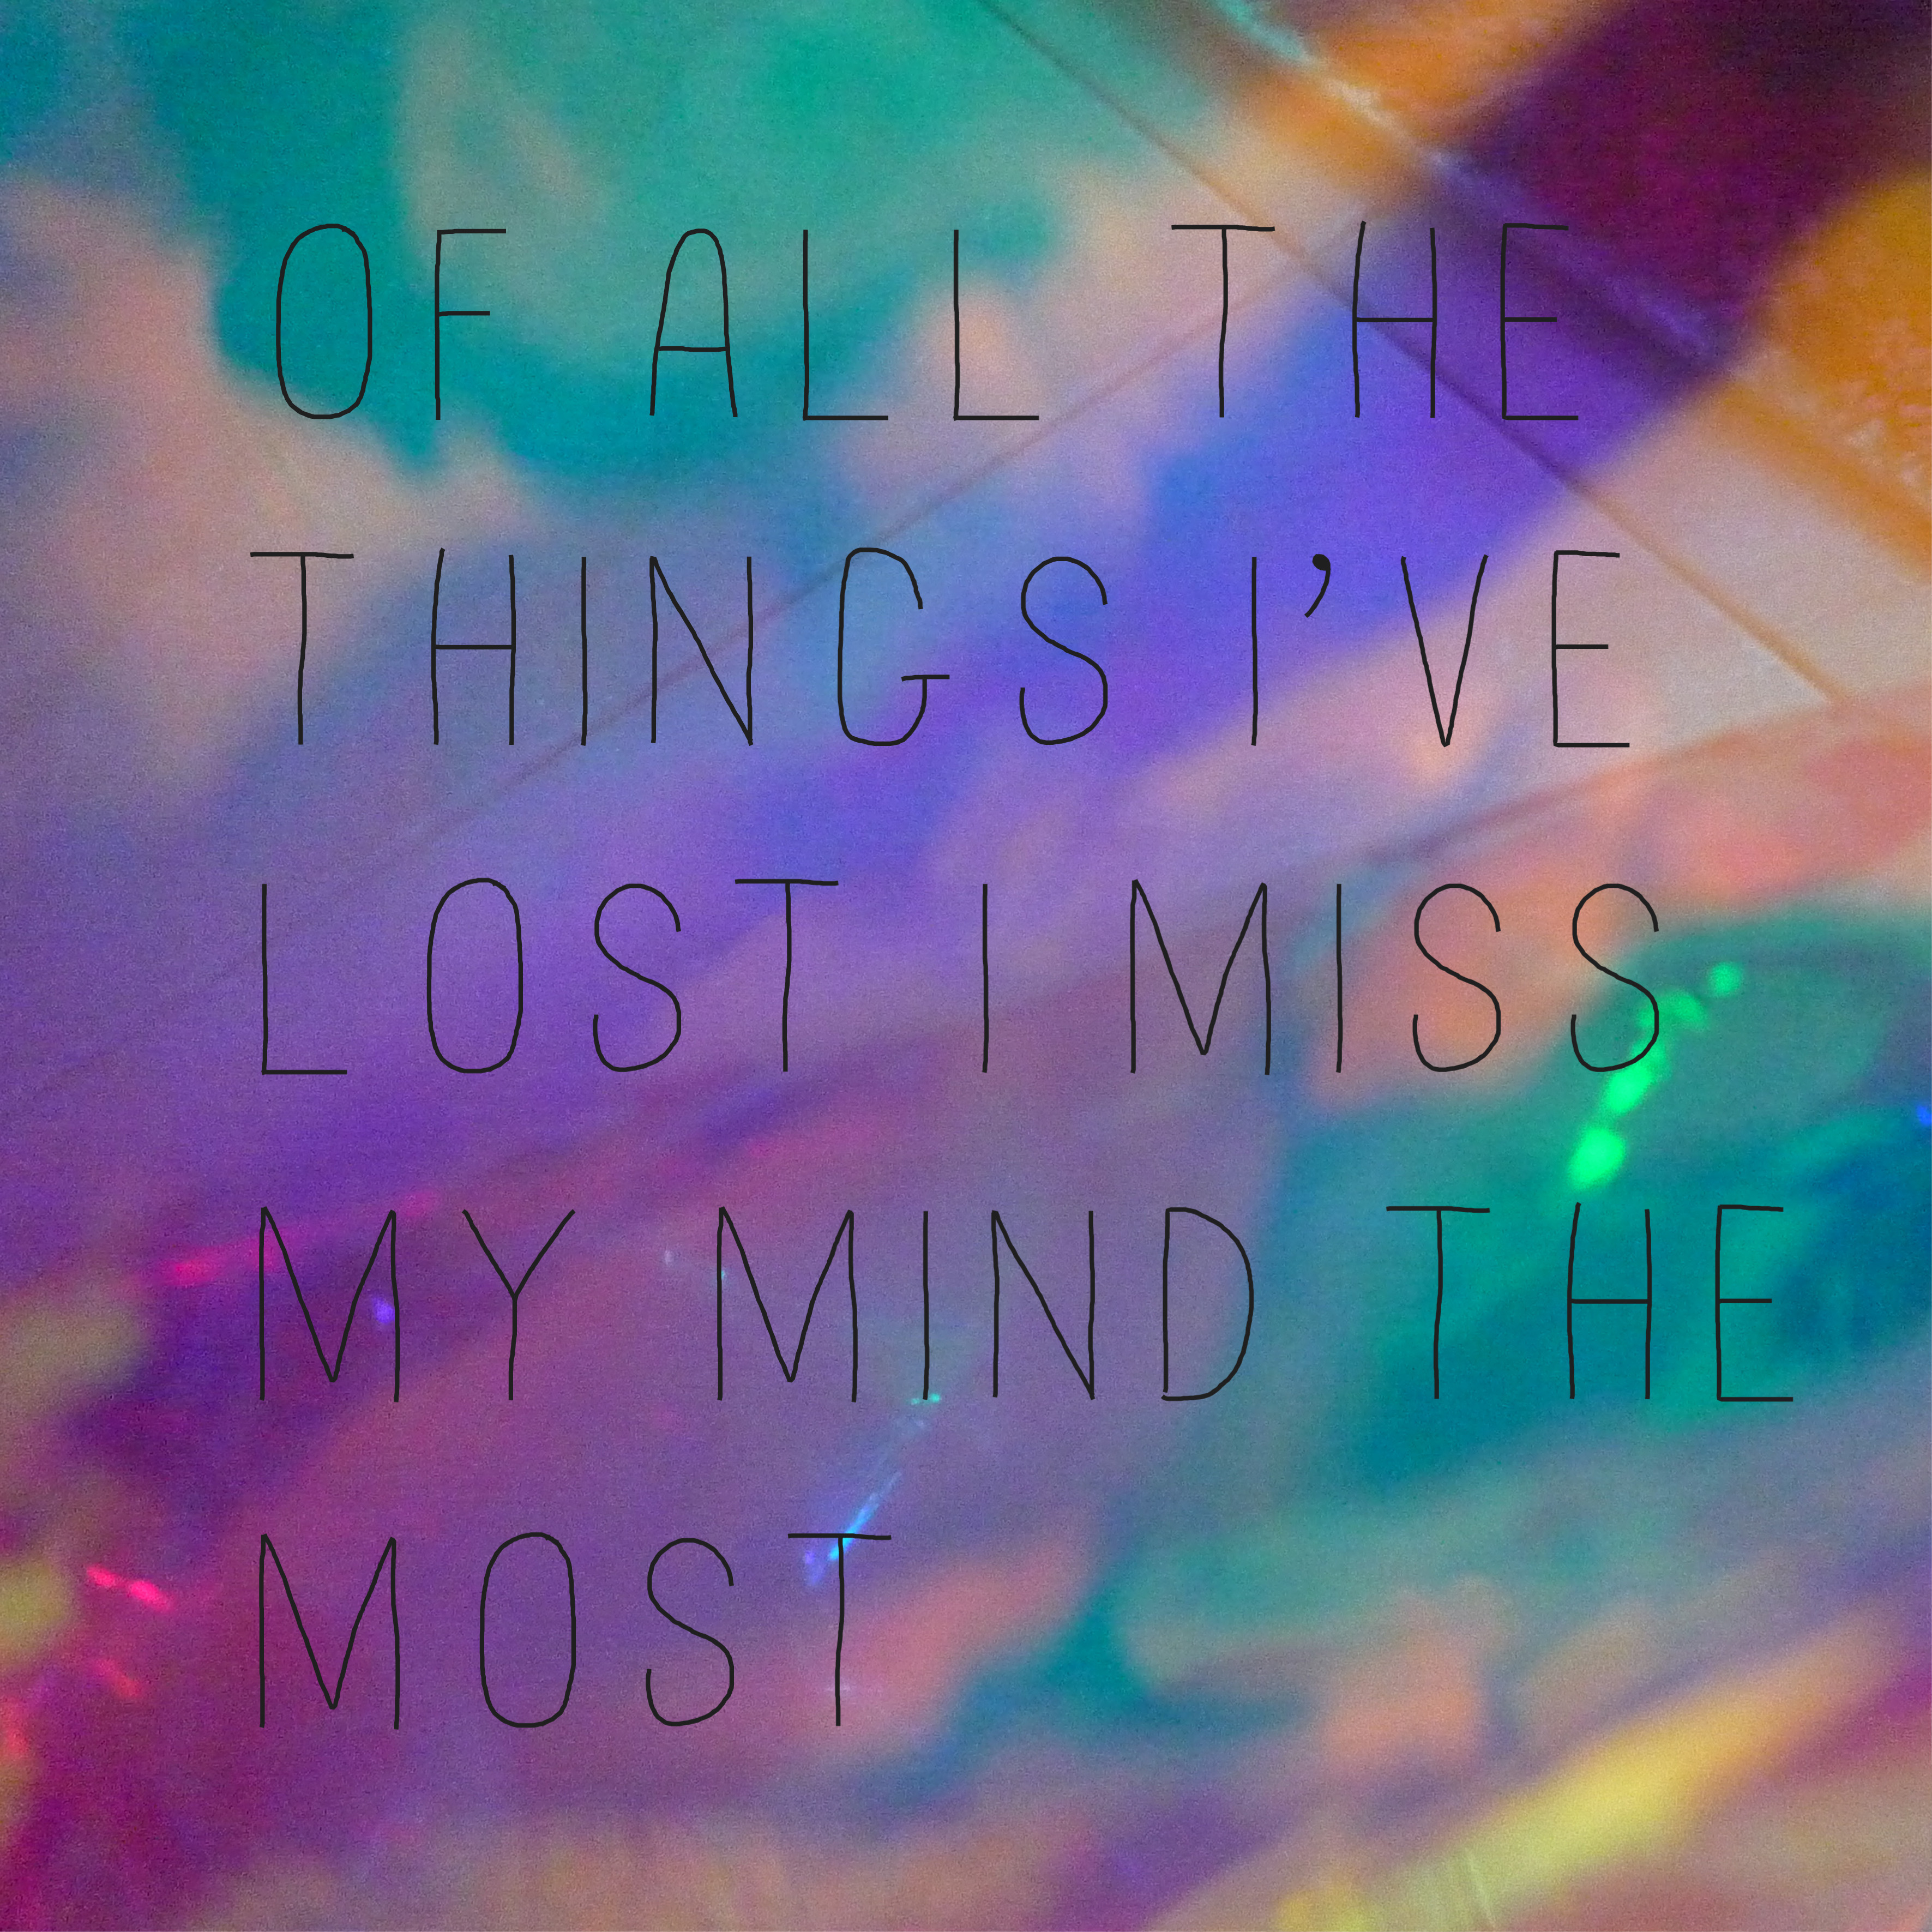 of all the things ive lost i miss my mind the most